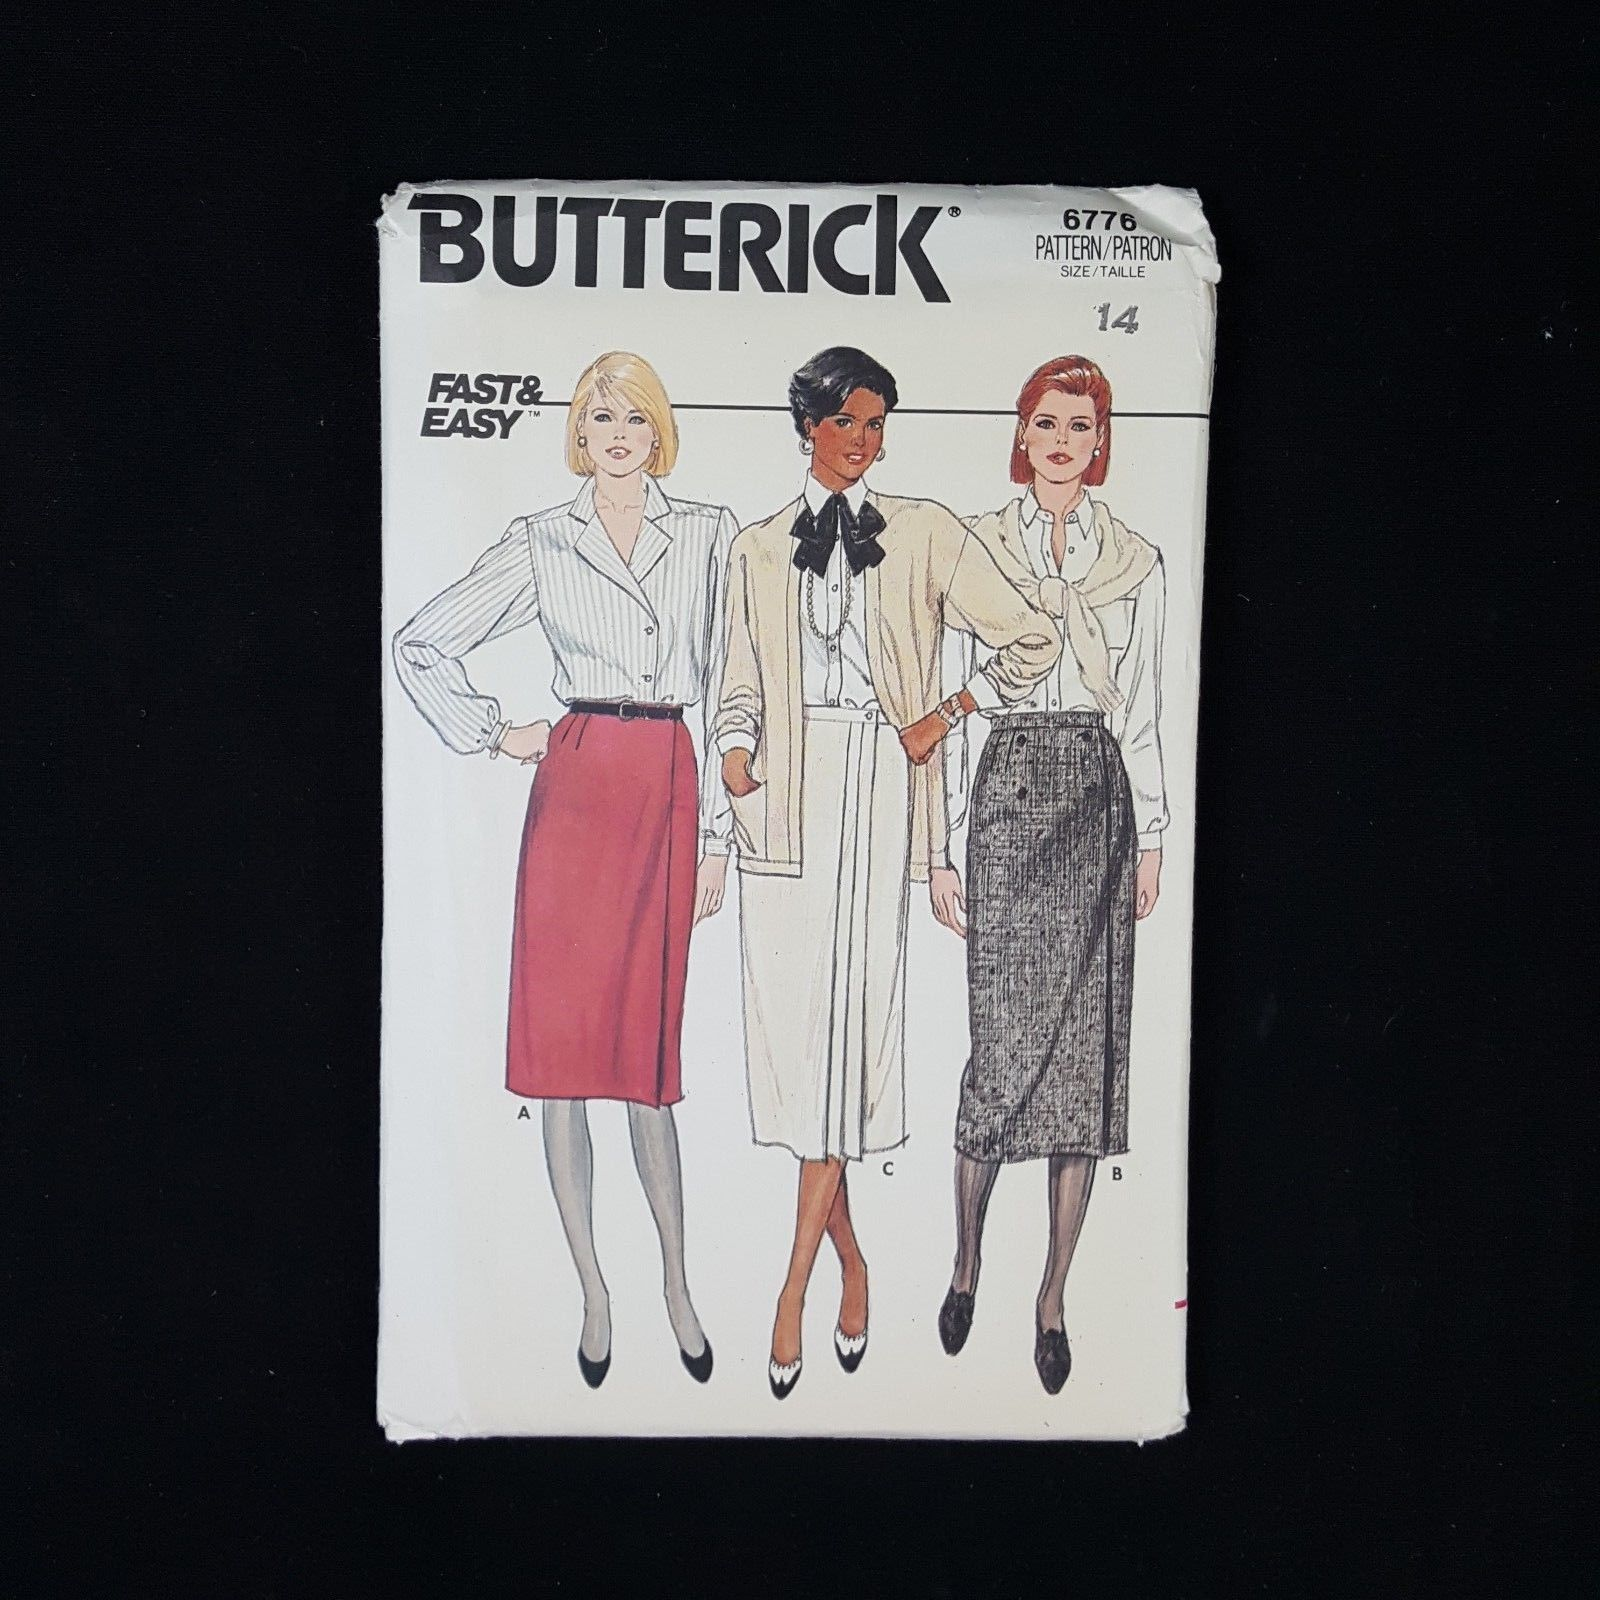 32c8c182744 S l1600. S l1600. Previous. Vintage BUTTERICK Size 14  6776 Sewing Pattern  Women s Misses Skirt 1980 s